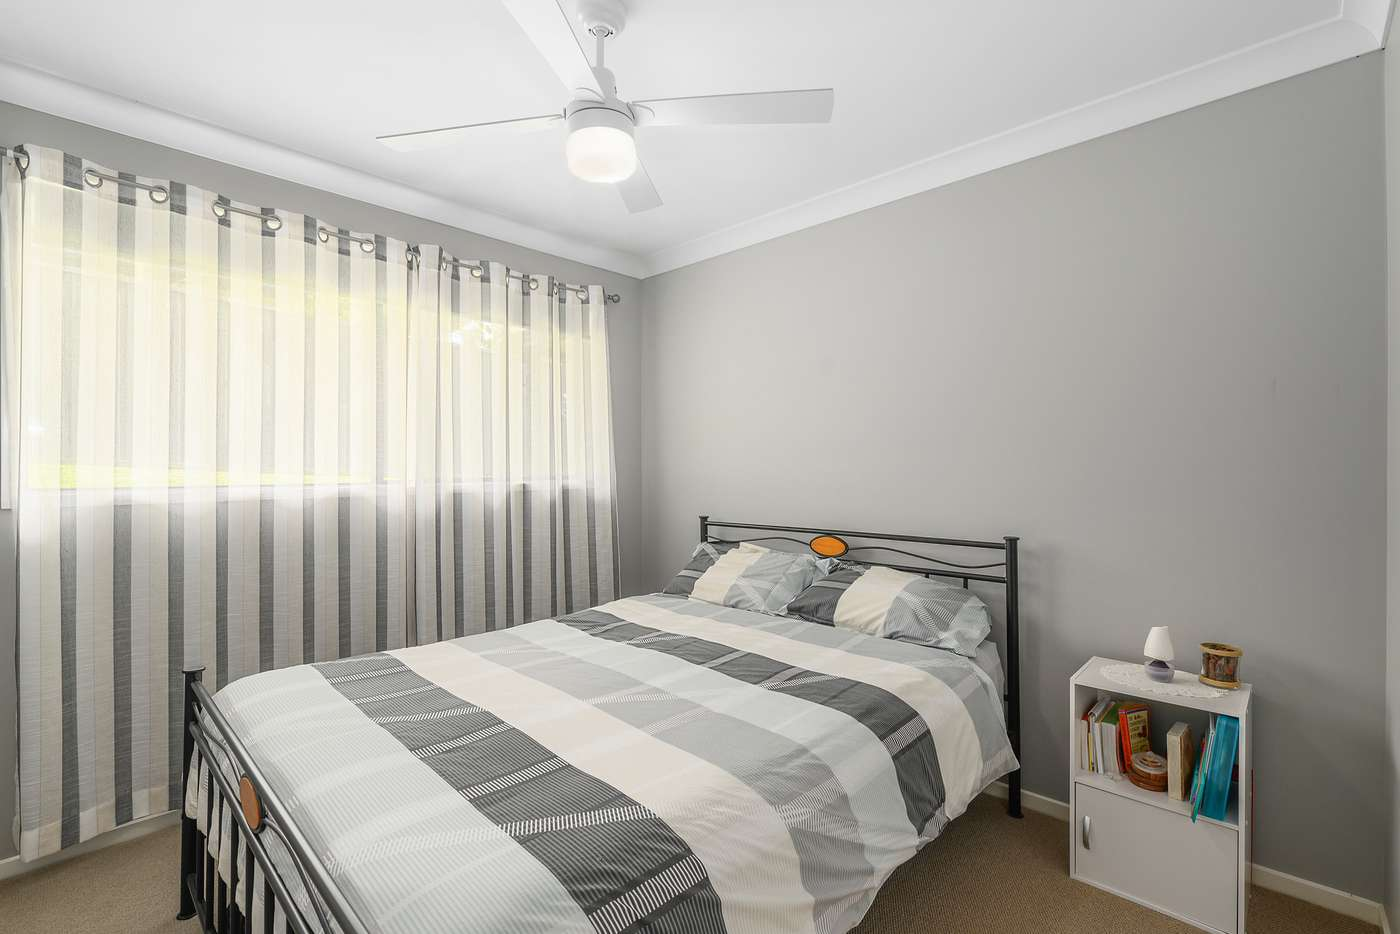 Fifth view of Homely house listing, 10 Oceanic Drive, Sandy Beach NSW 2456